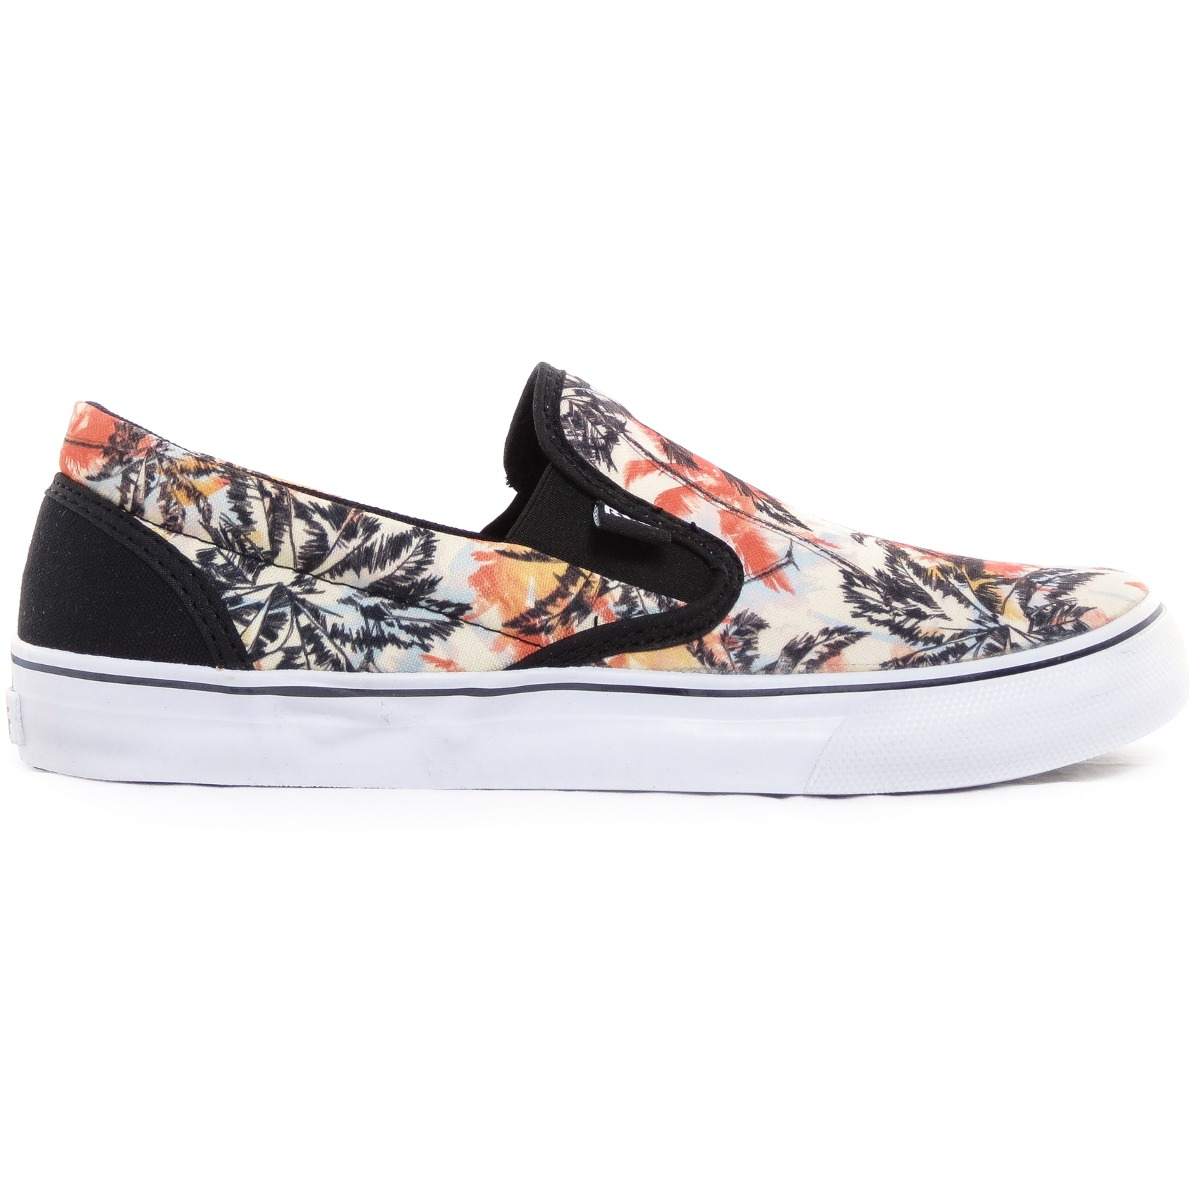 Zapatillas - Reef Zapatillas Panchas Reef Flasmob Slip On Lona